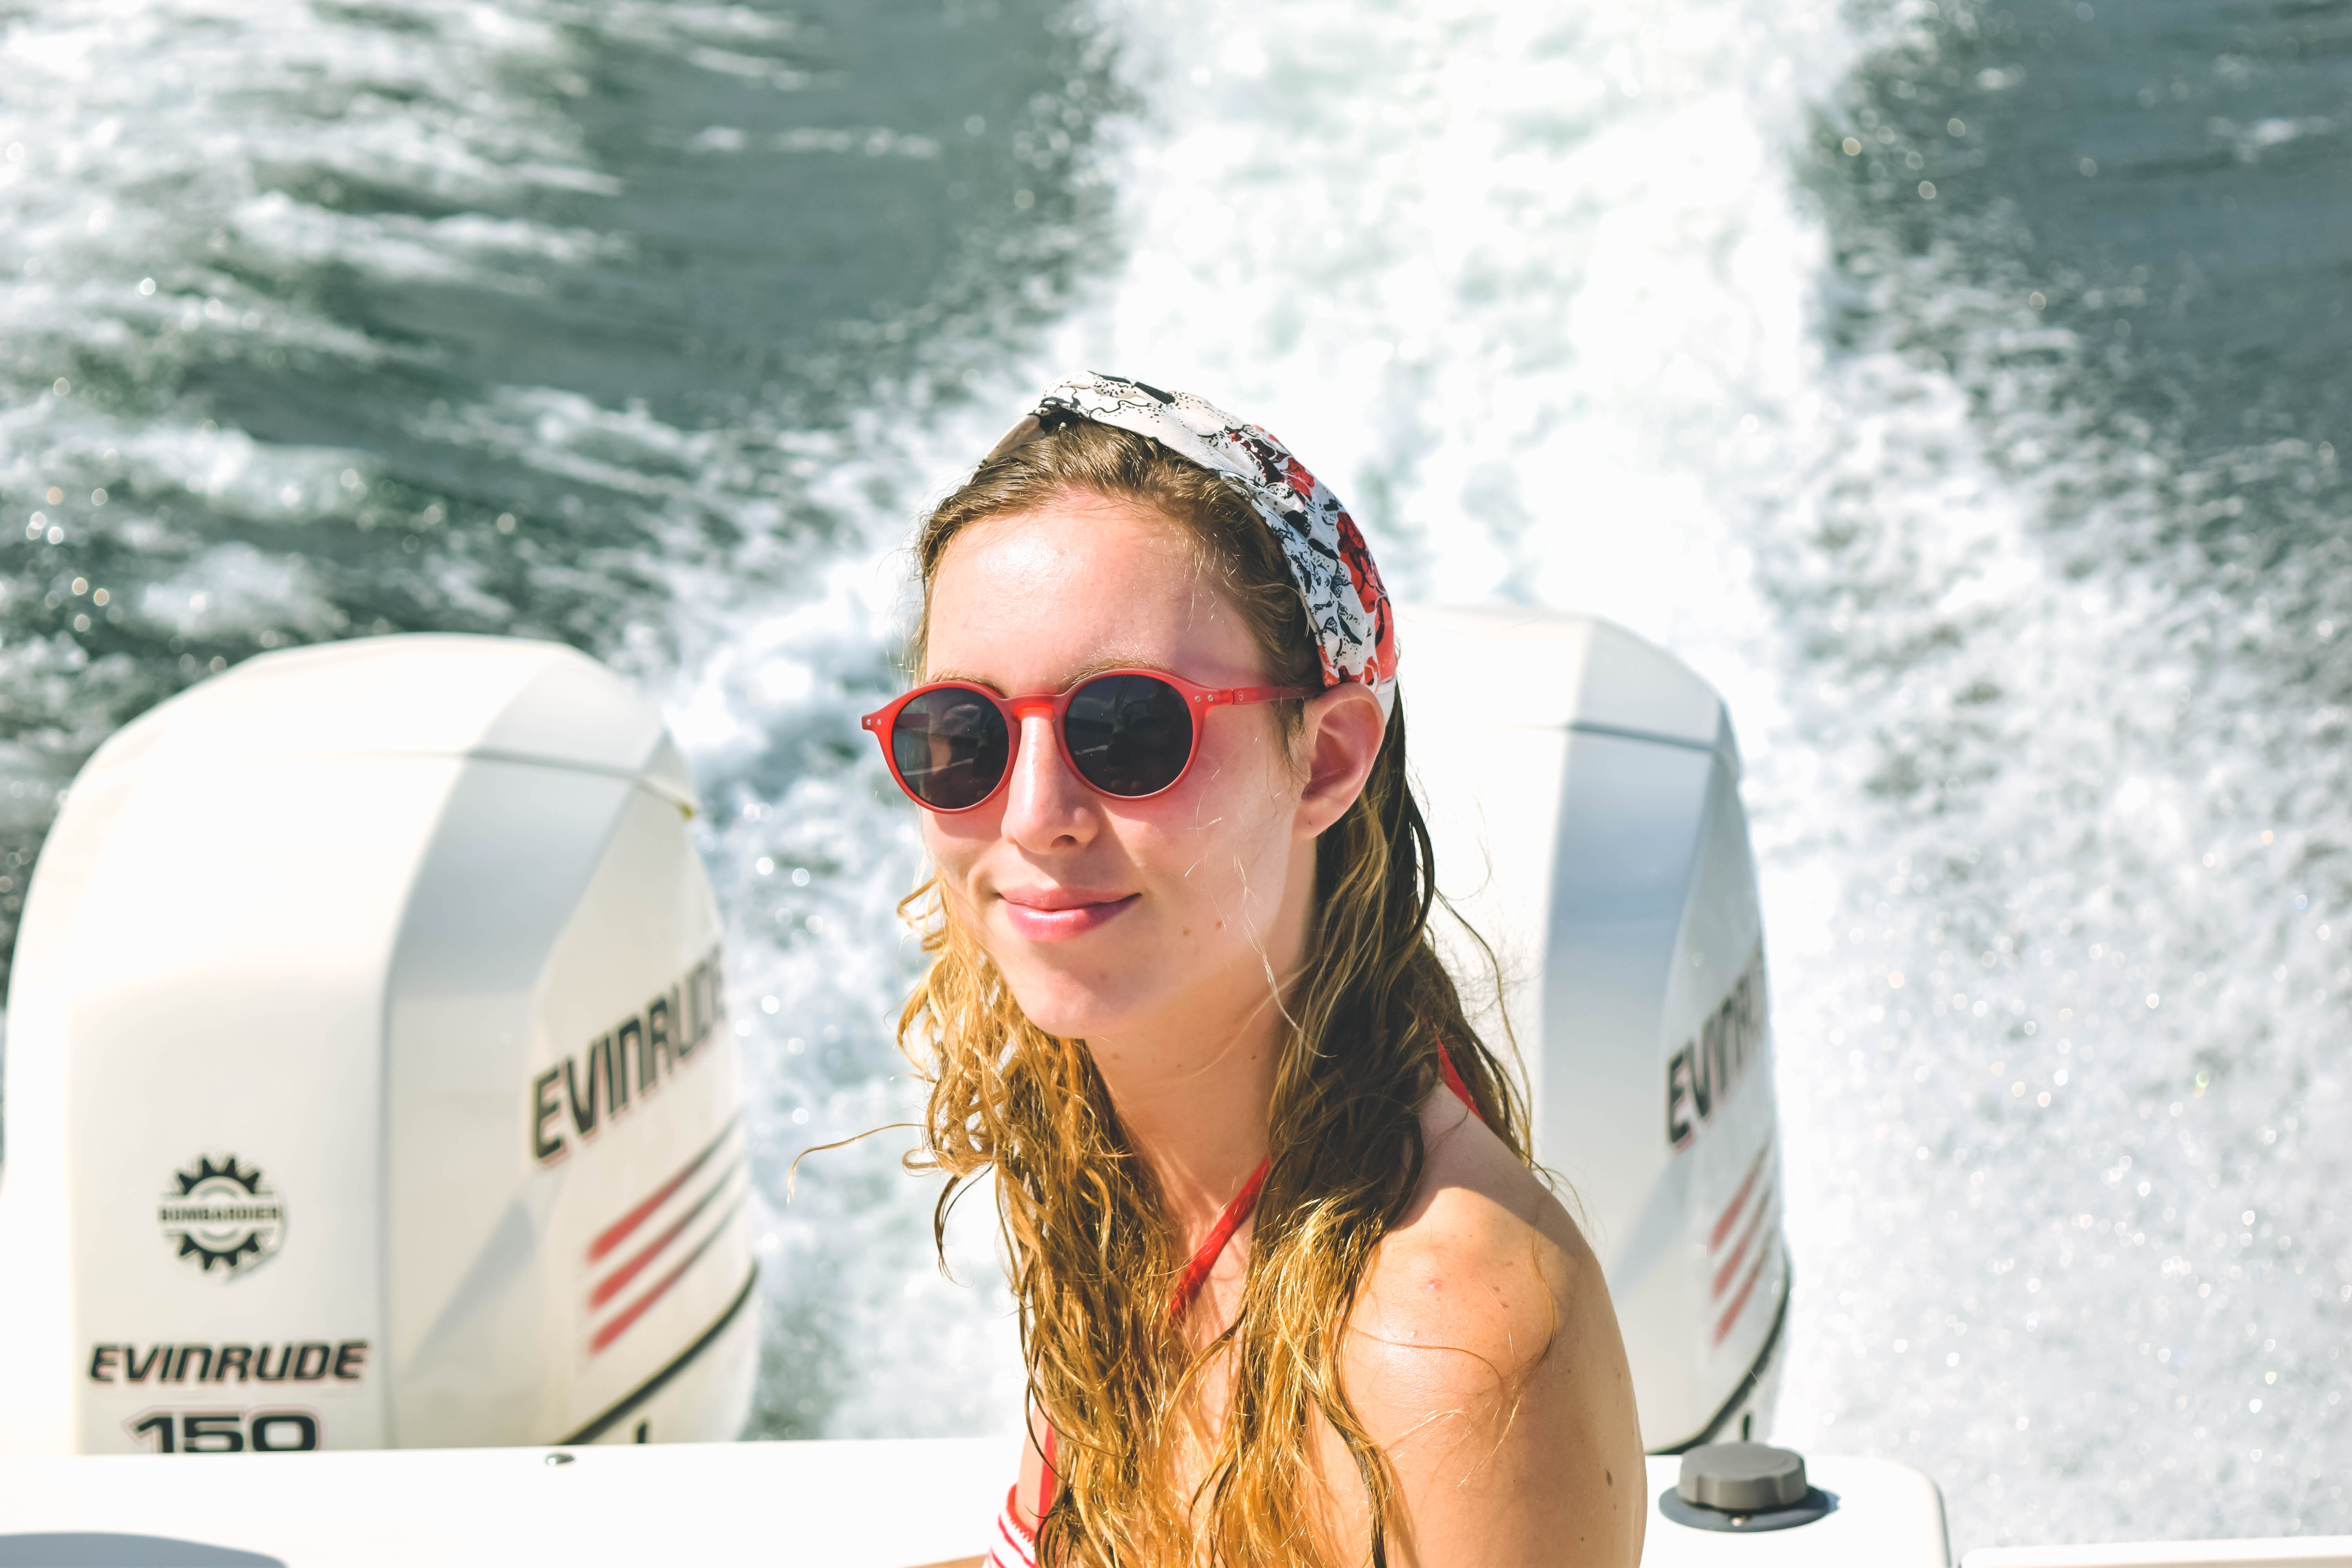 Lake Winnipesaukee_New Hampshire_Travel Guide_What to do_What to See_kiini_bikini_fit_girl_photography_fashion blogger_travel blogger_boat_storm_couple_romantic_vintage_the notebook_free